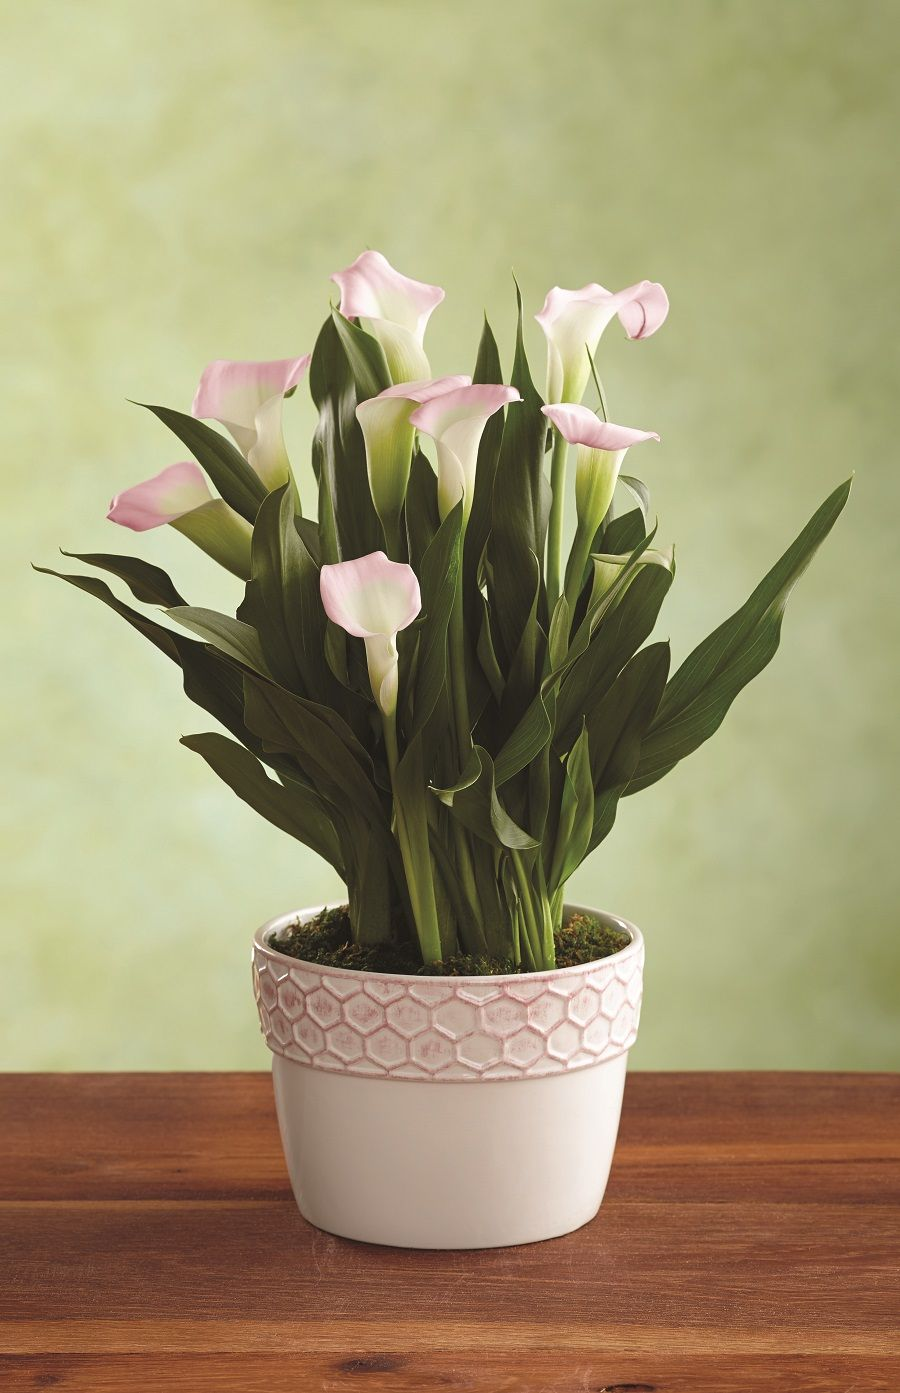 A Beautiful Calla Lily Plant For Mother S Day Make Her Smile Lily Plants Plants Mother S Day Gift Baskets